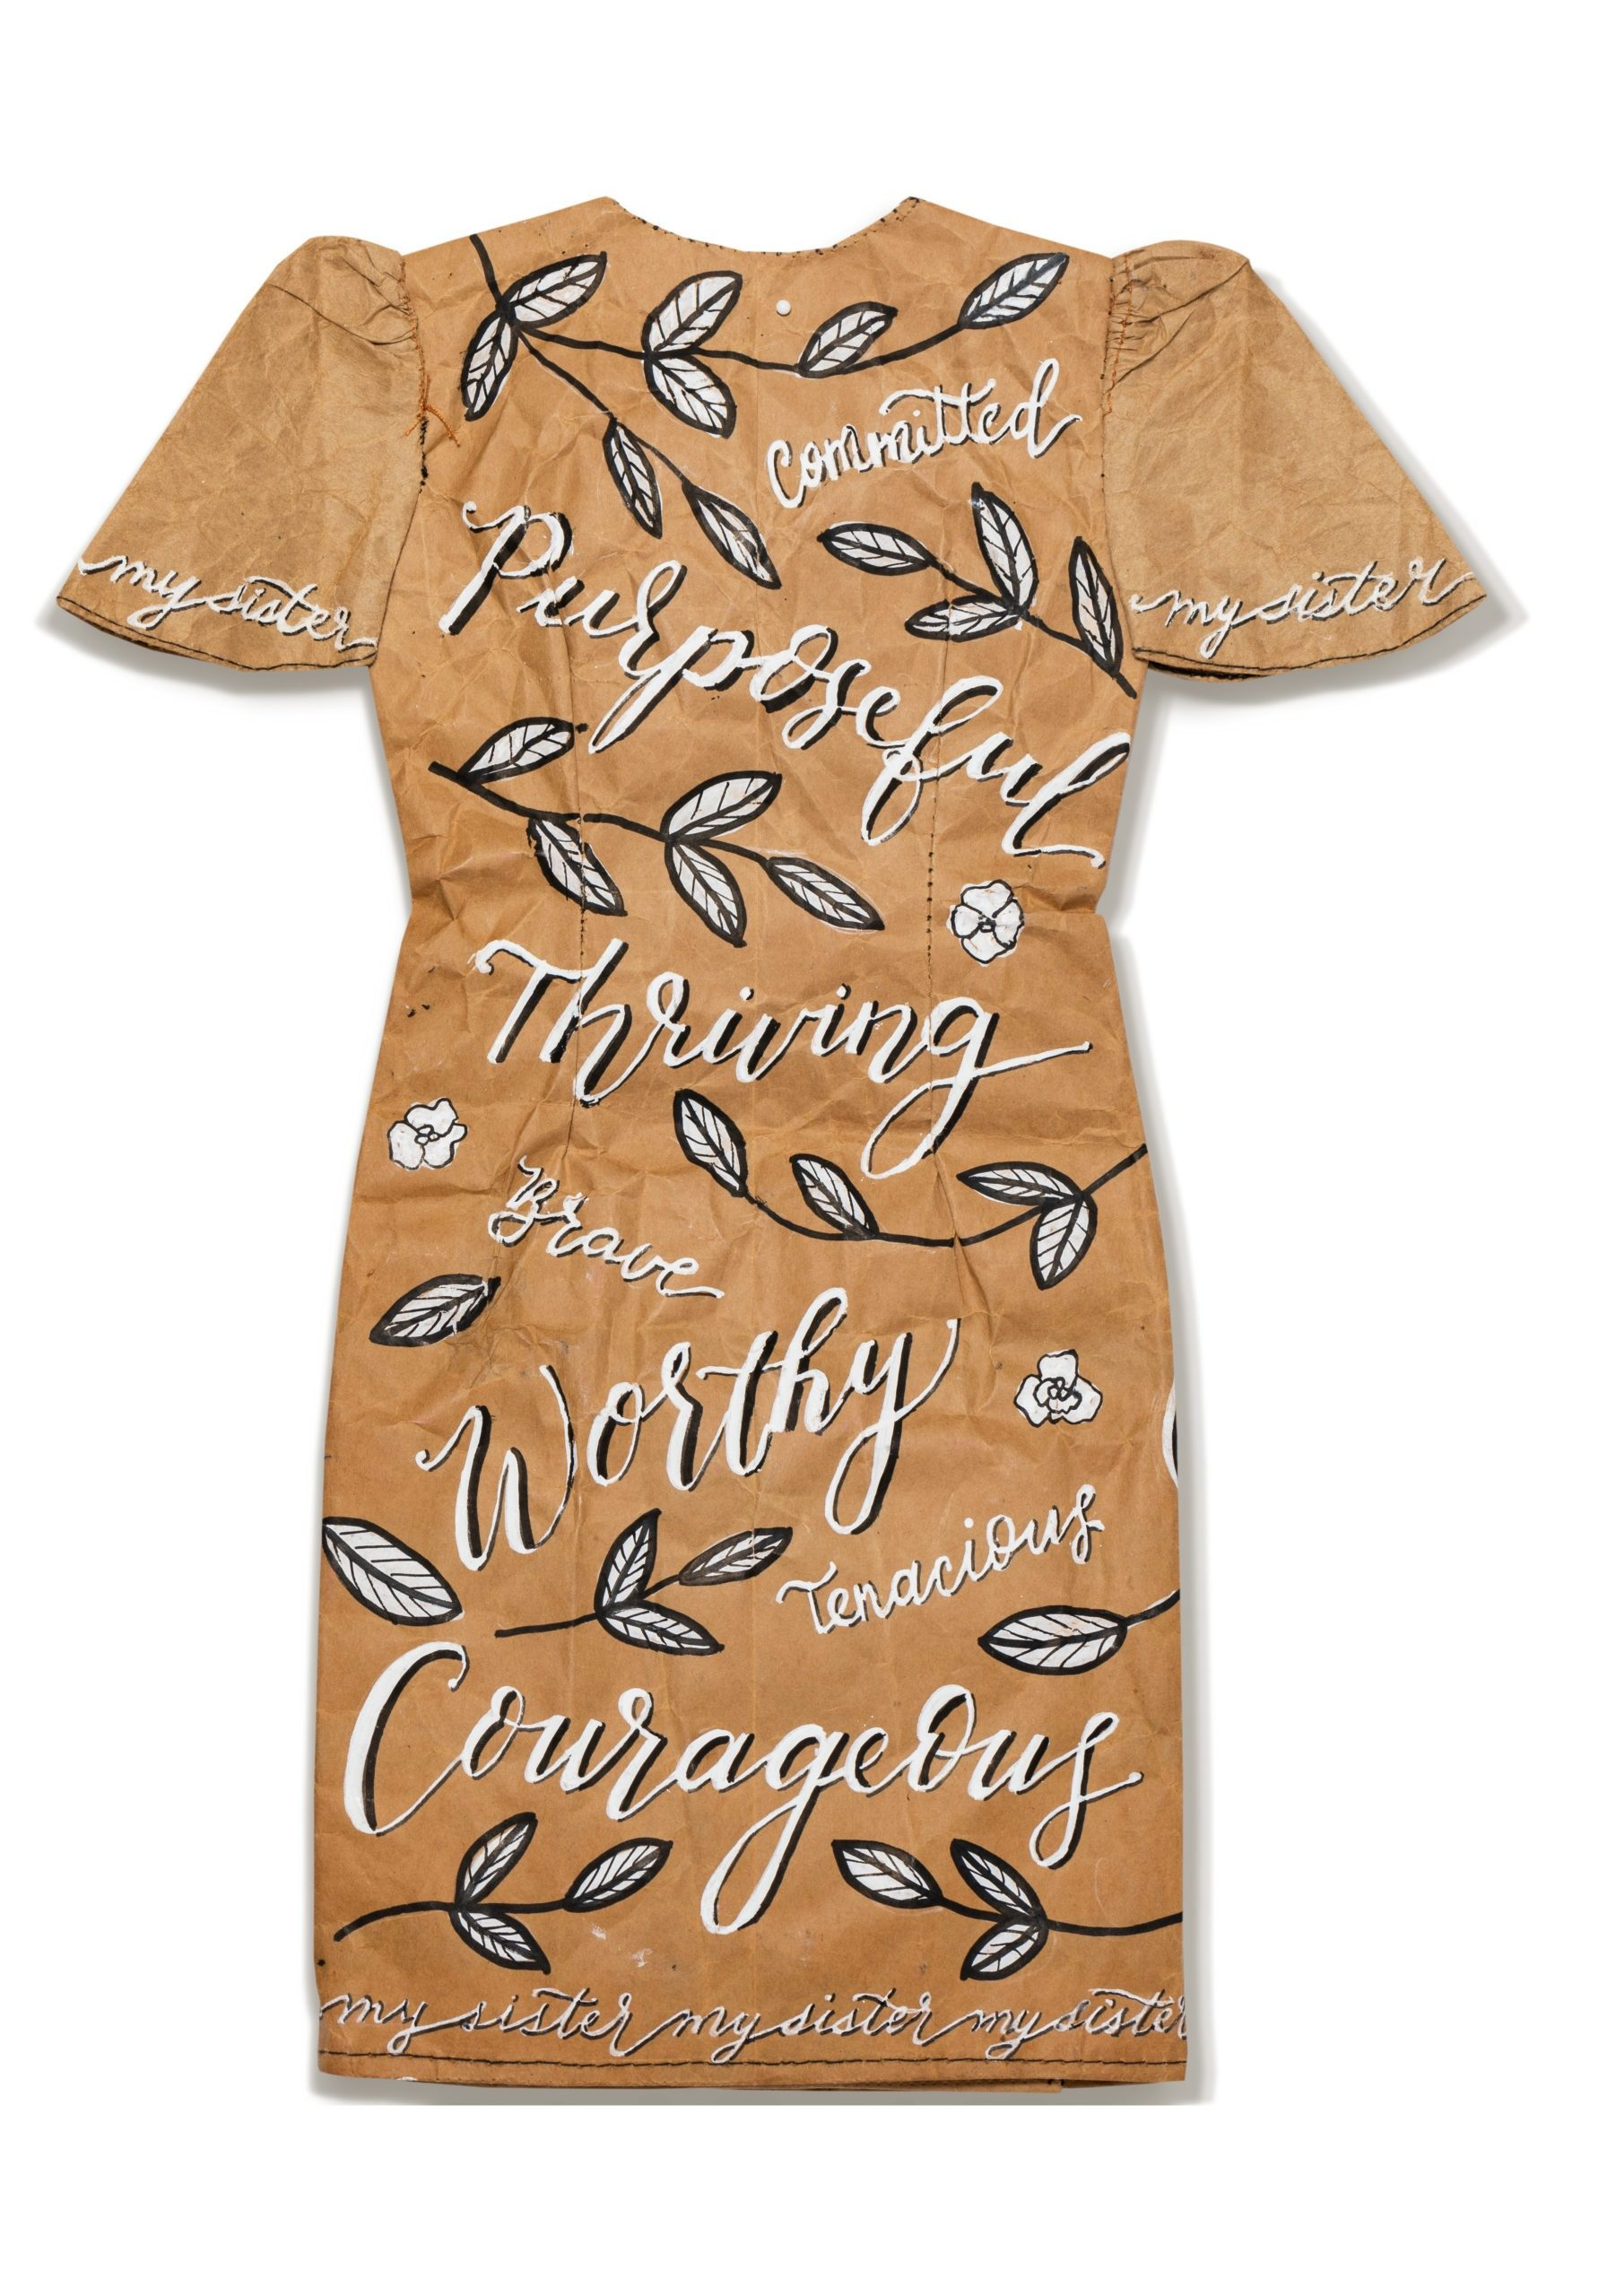 20-QTR4-DRESS-LIMITED EDITION-D#150.CALLIGRAPHY-ANGIEBAILEY_v4